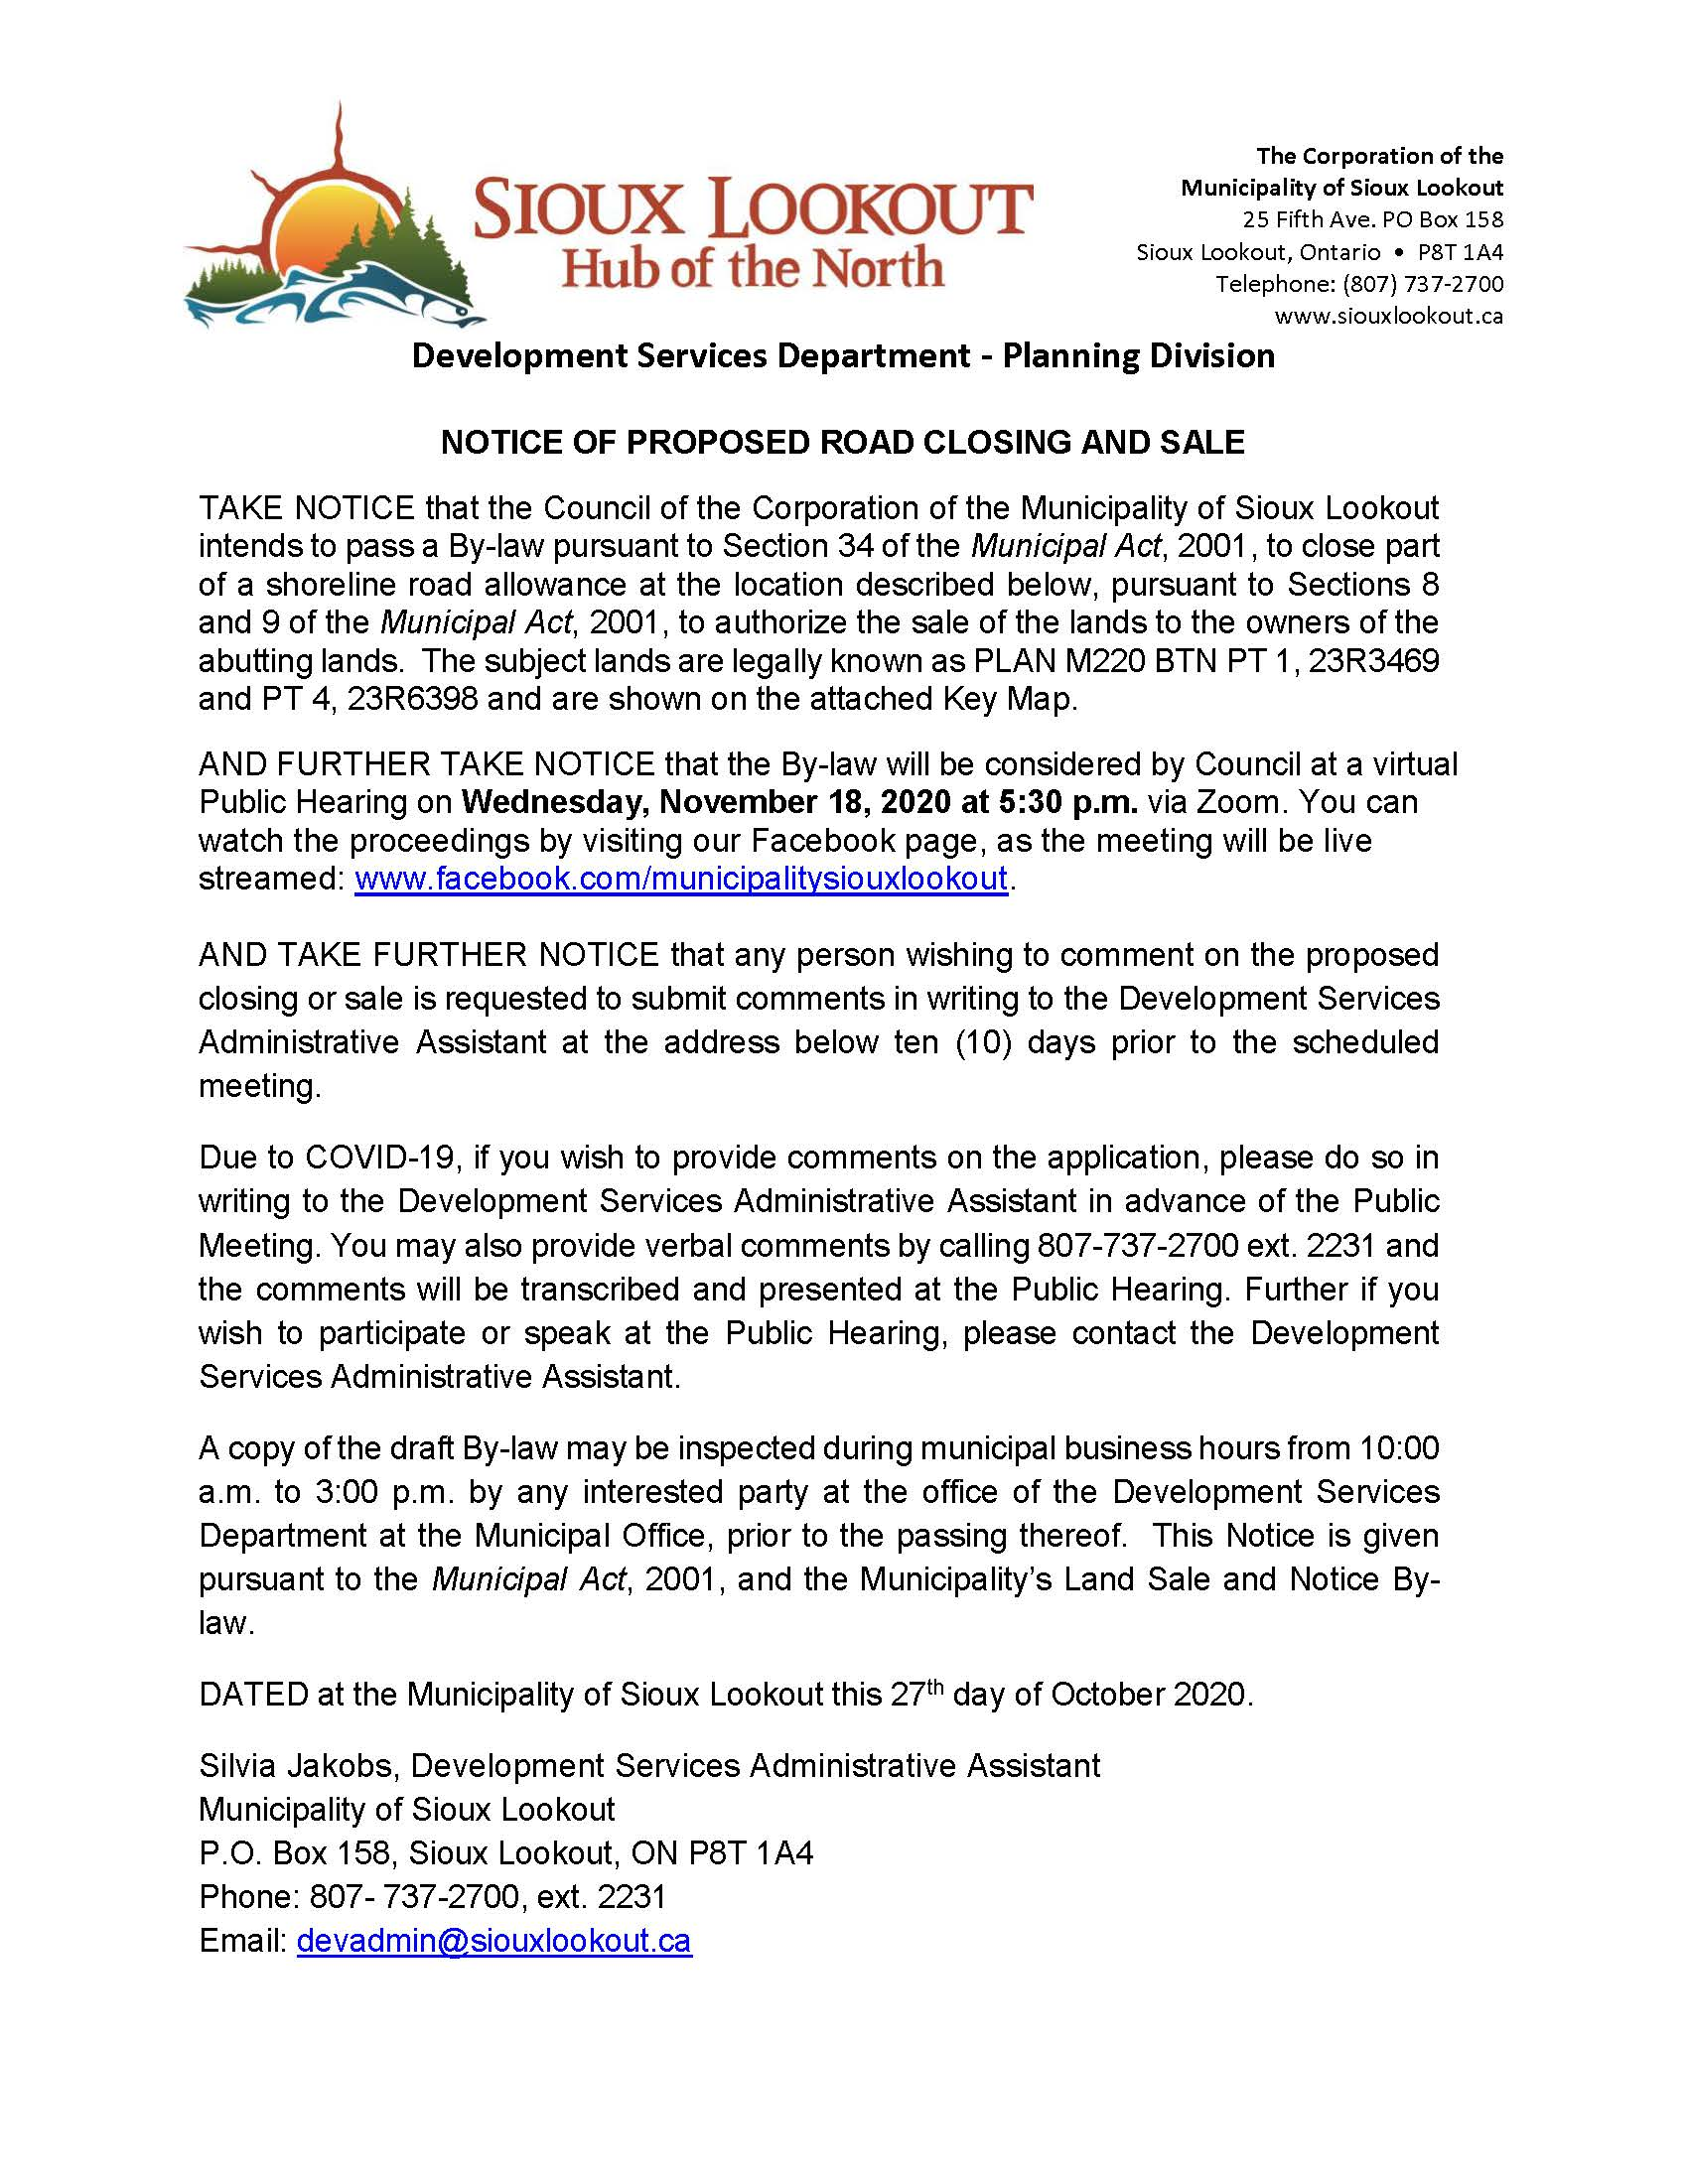 Notice of Public Meeting (Knobby's)_Page_1